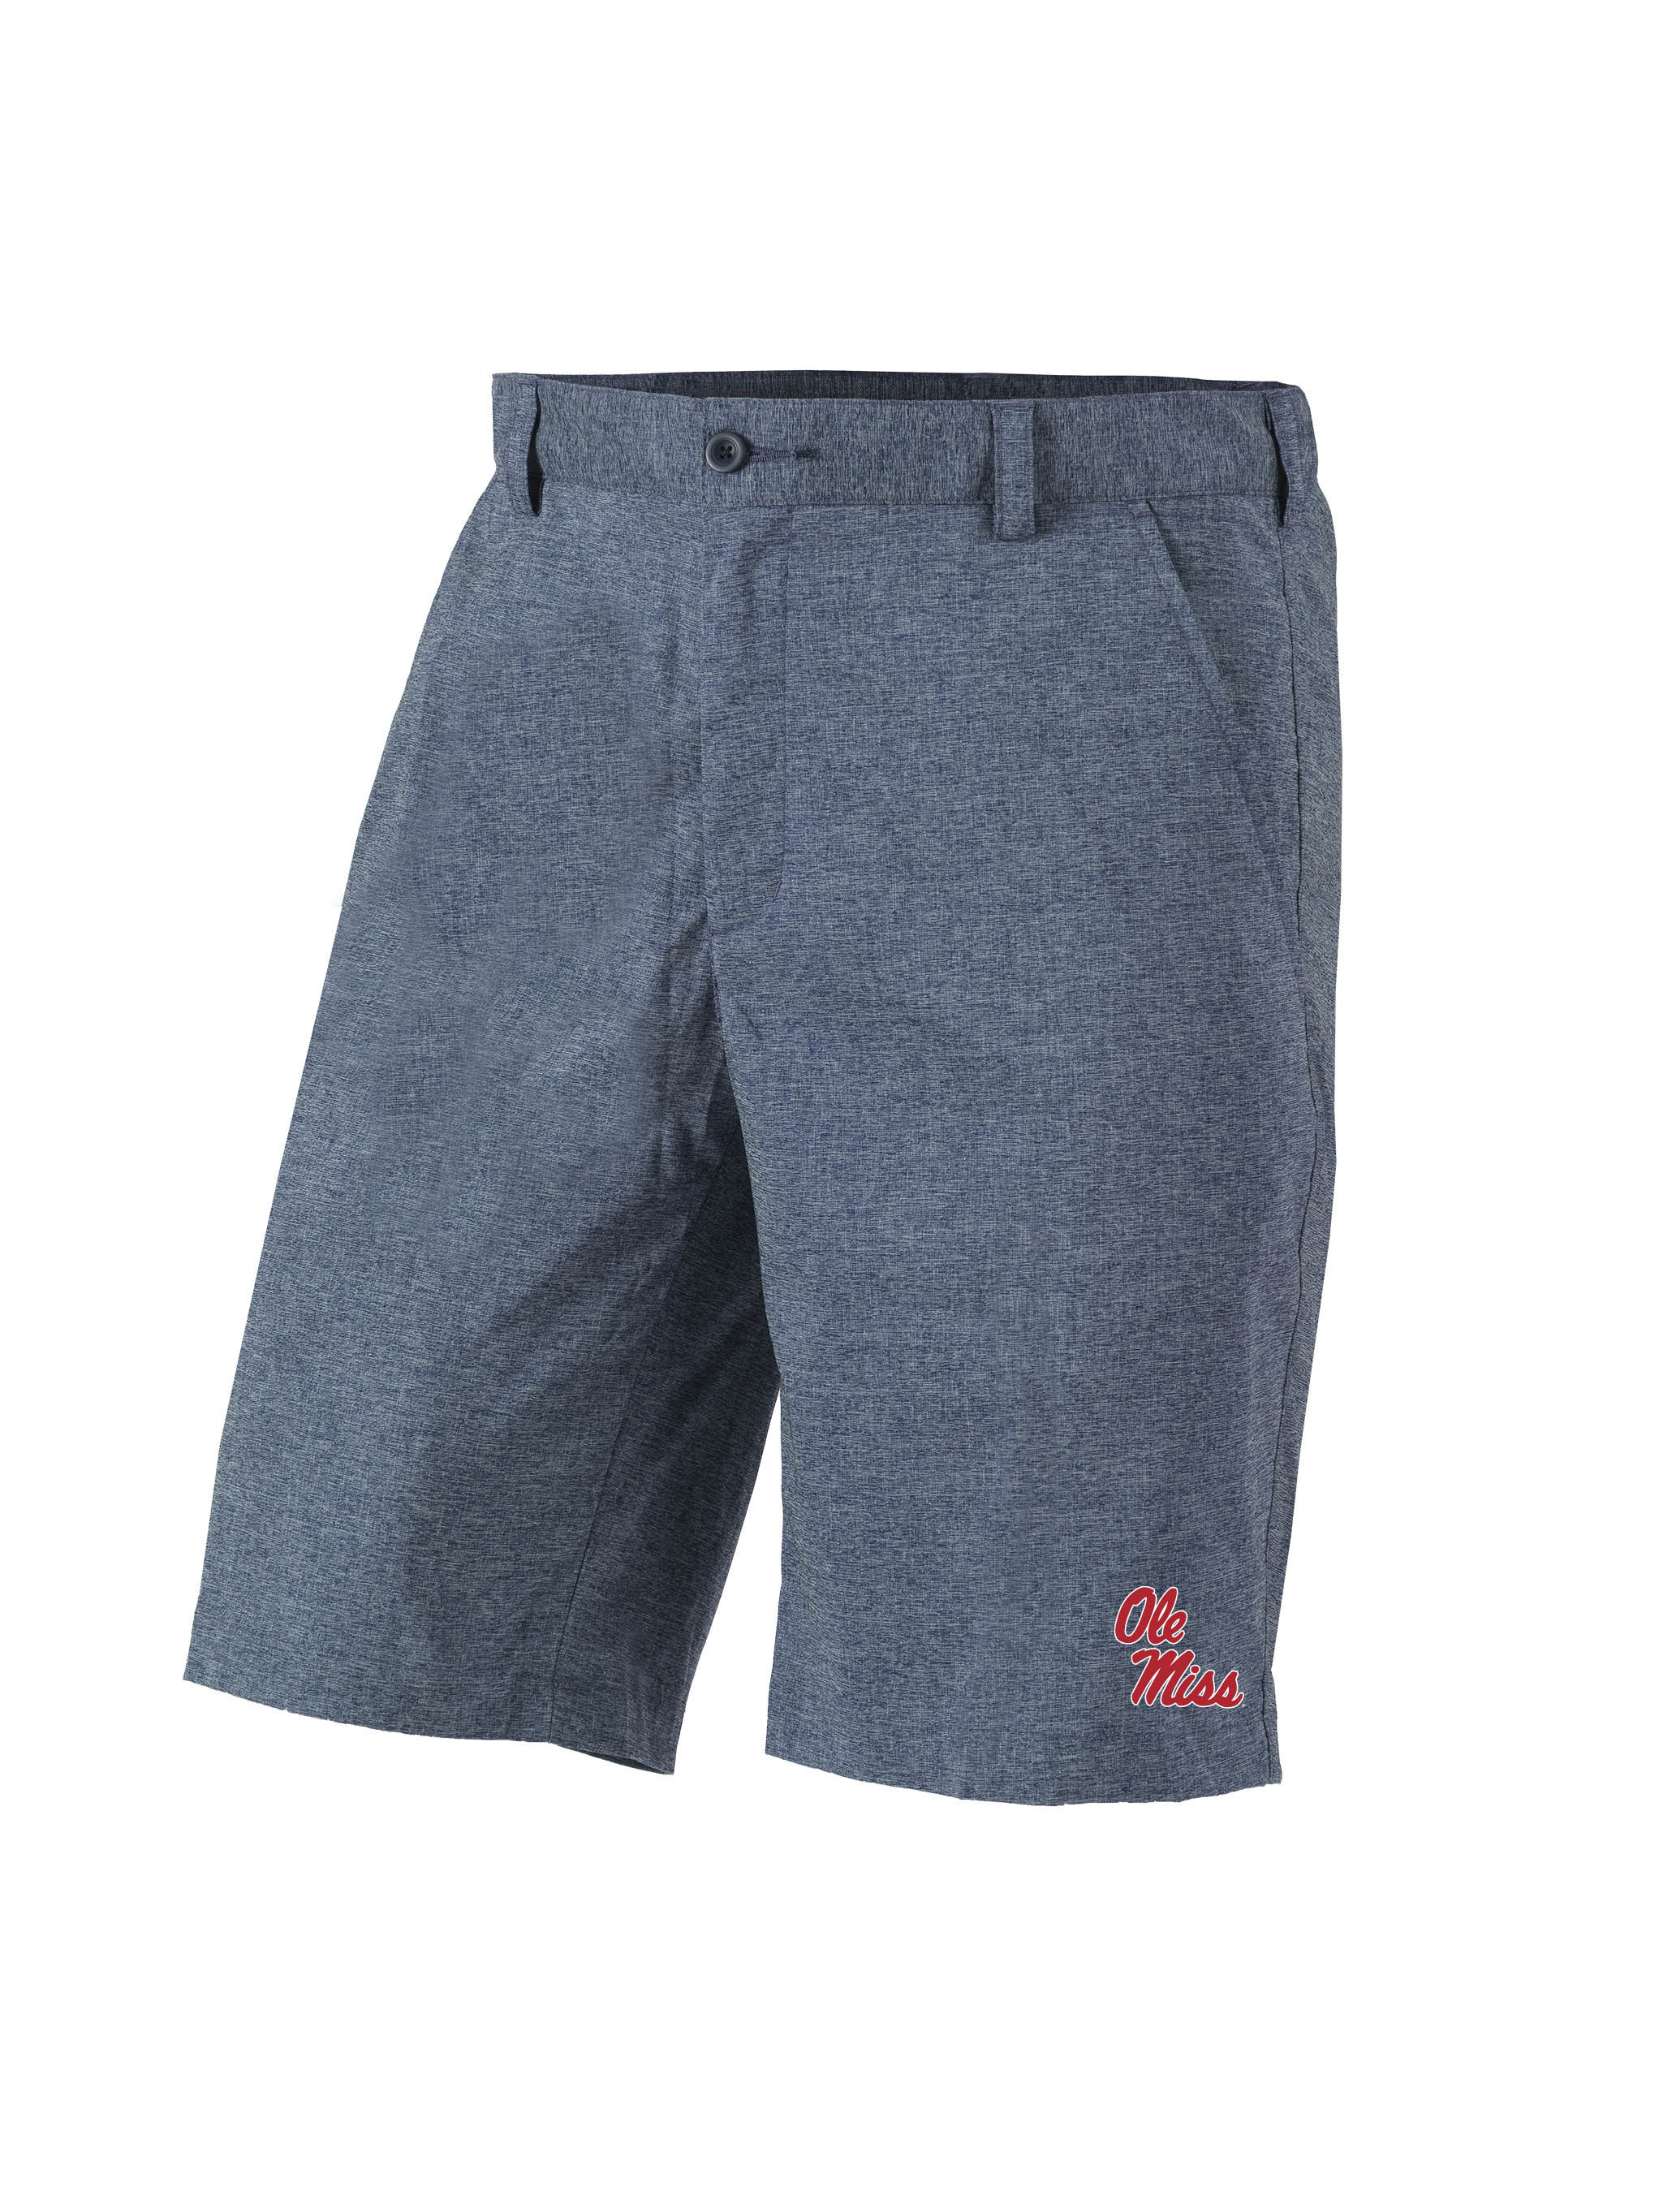 Columbia Mens Pitch and Run Shorts